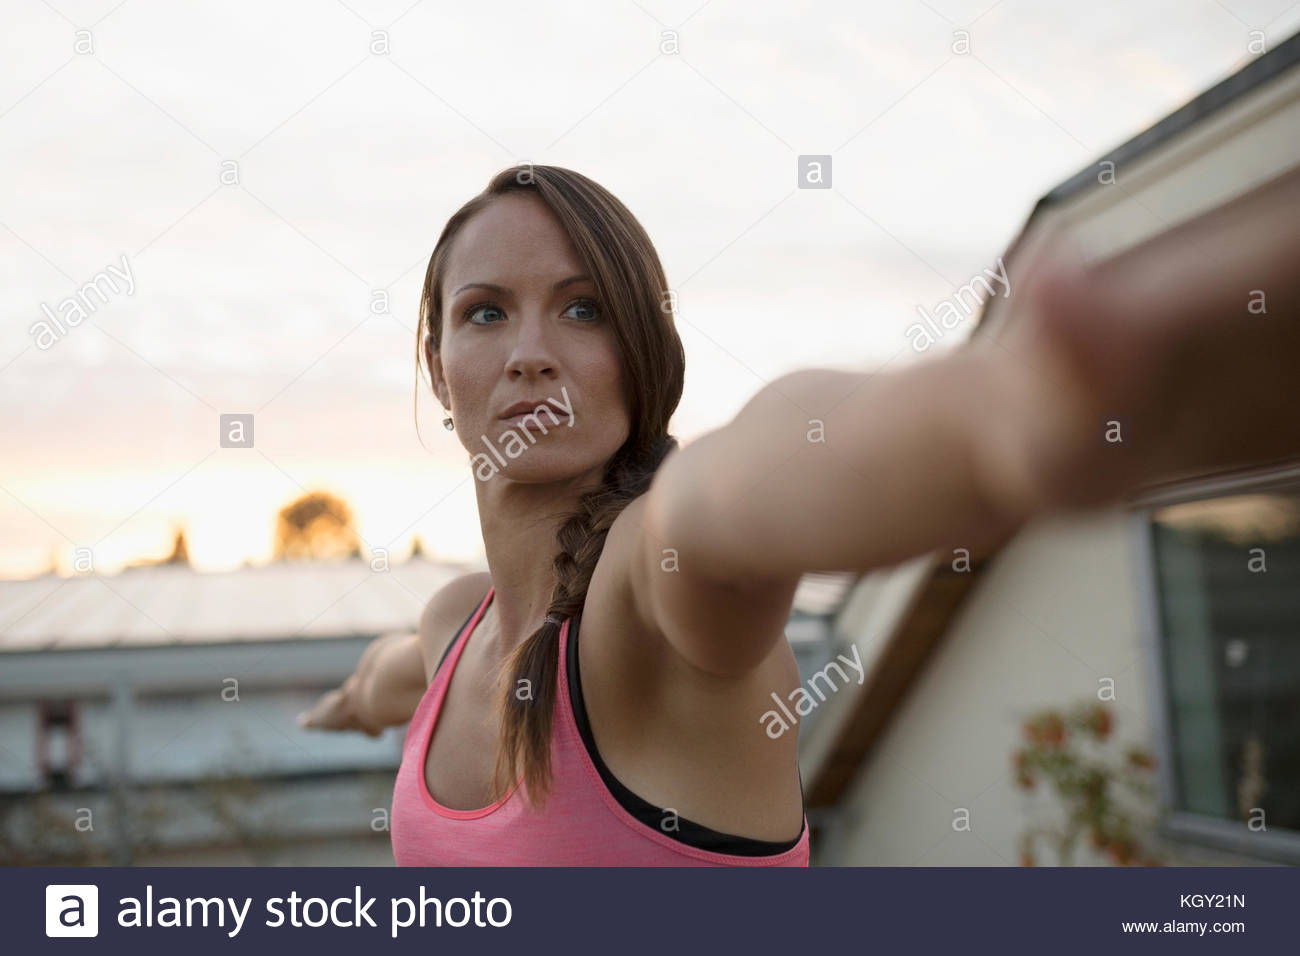 Serious, focused woman practicing yoga warrior 2 pose with arms outstretched - Stock Image